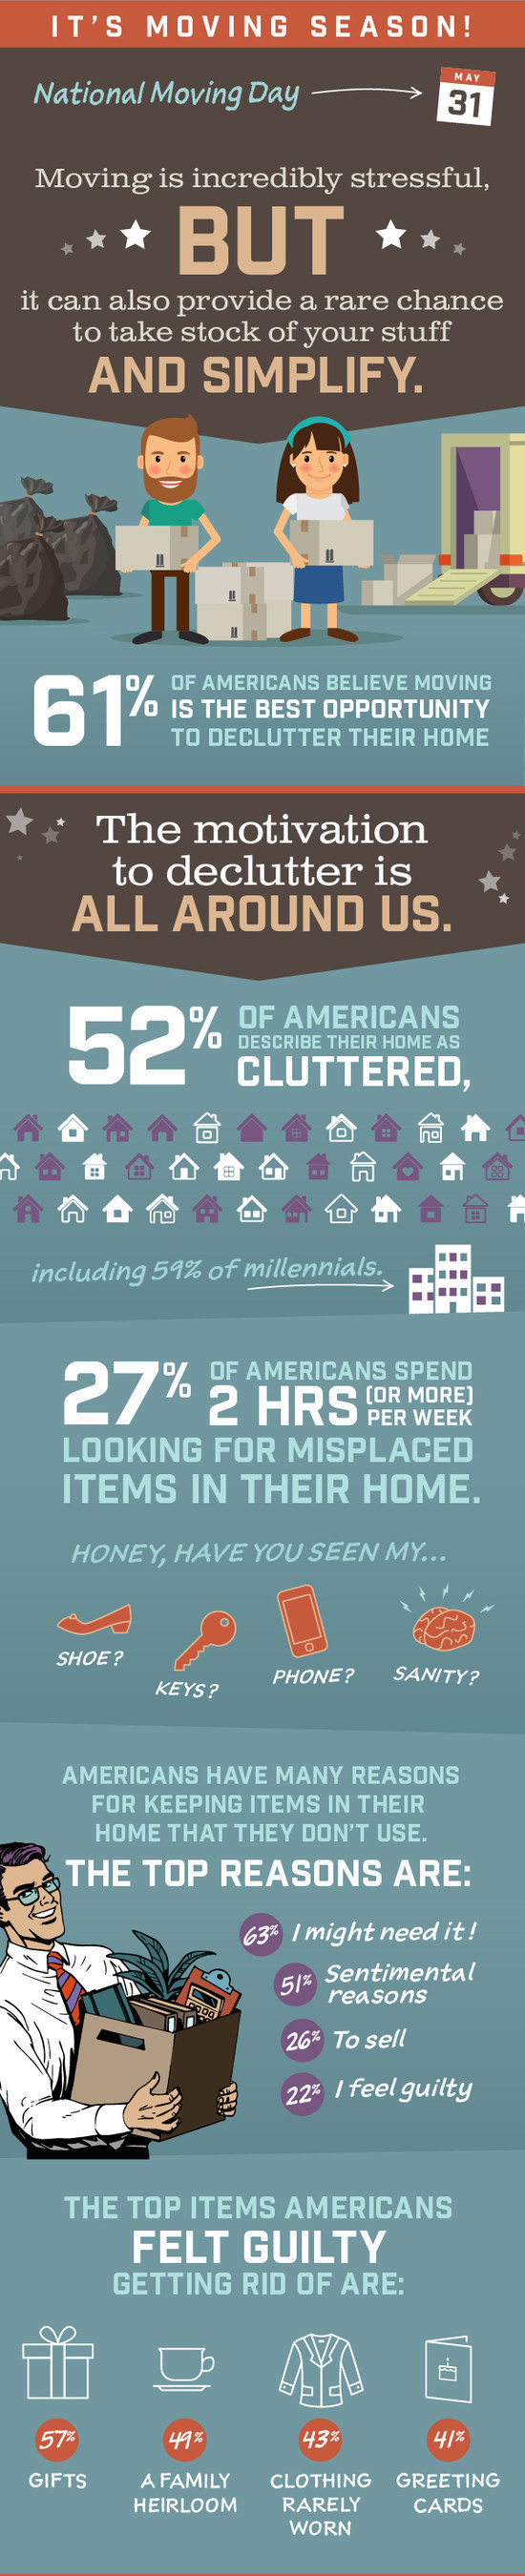 It's Moving Season! New Study Reveals Nation's Clutter Problems as Moving Season Begins